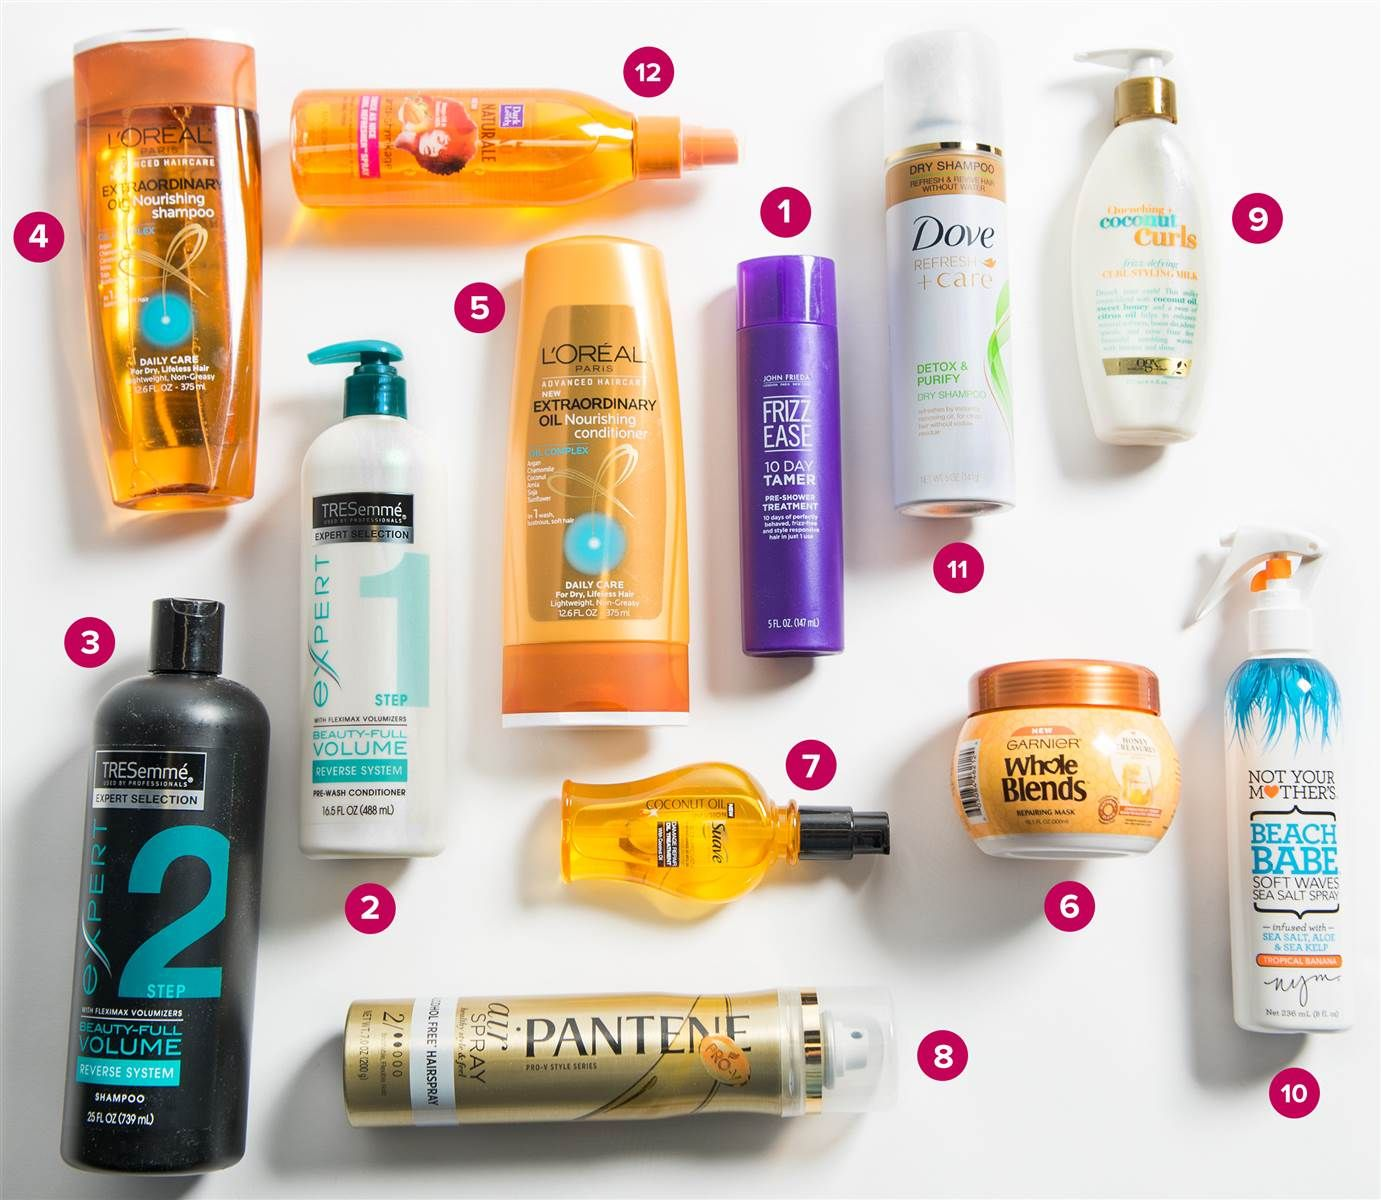 12 best drugstore hair products from the People and TODAY